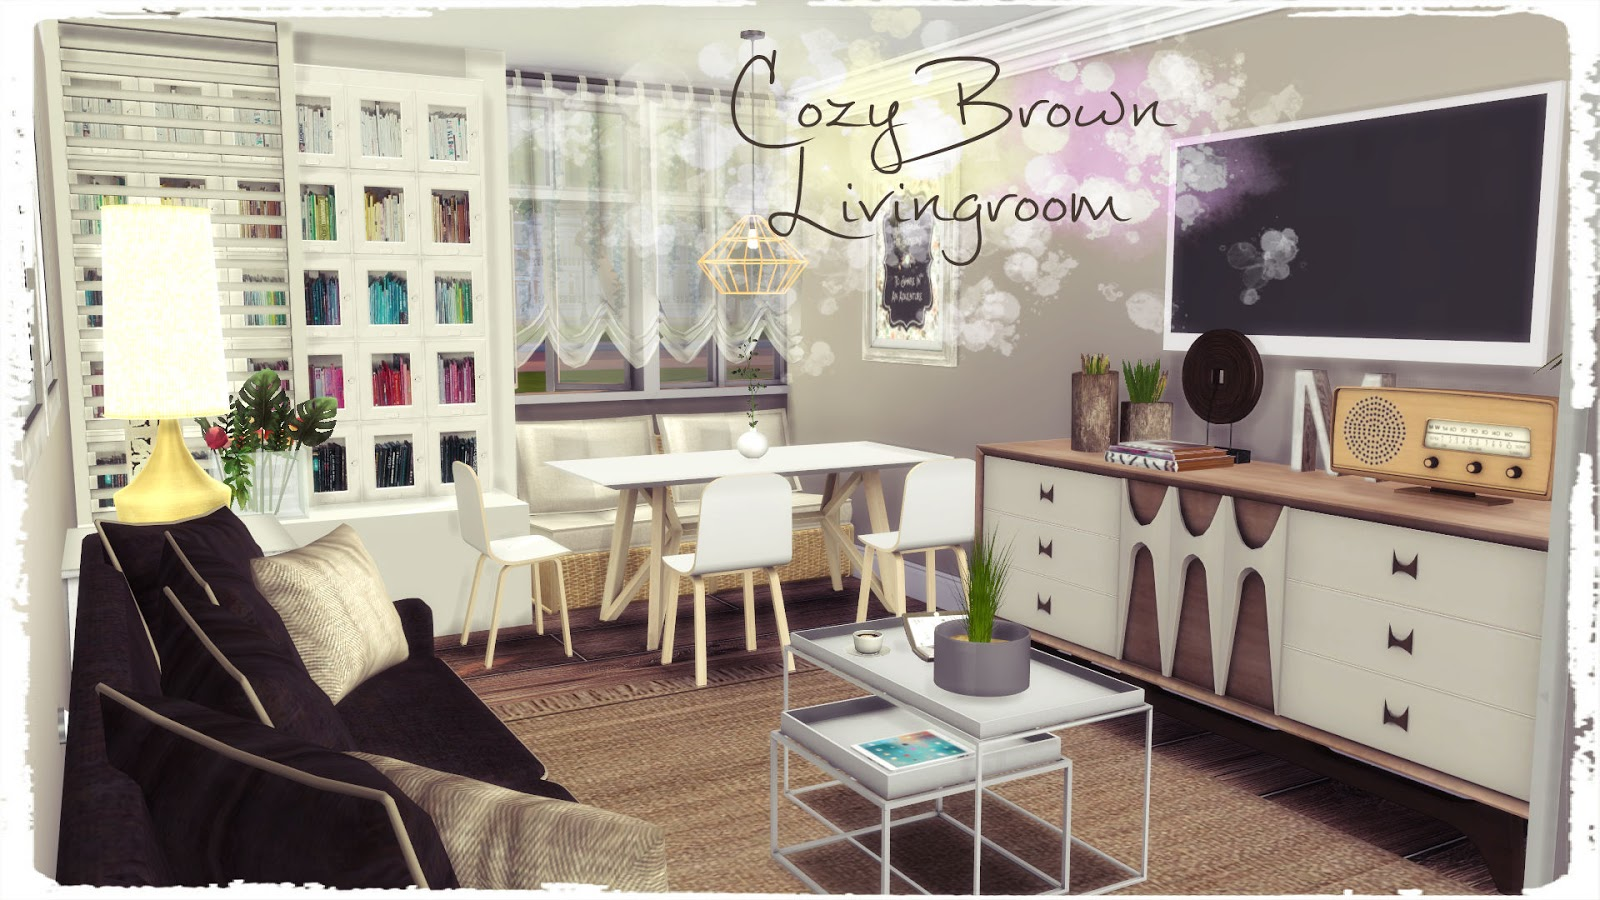 Cozy Living Room: Cozy Brown Livingroom (Build & Decoration)